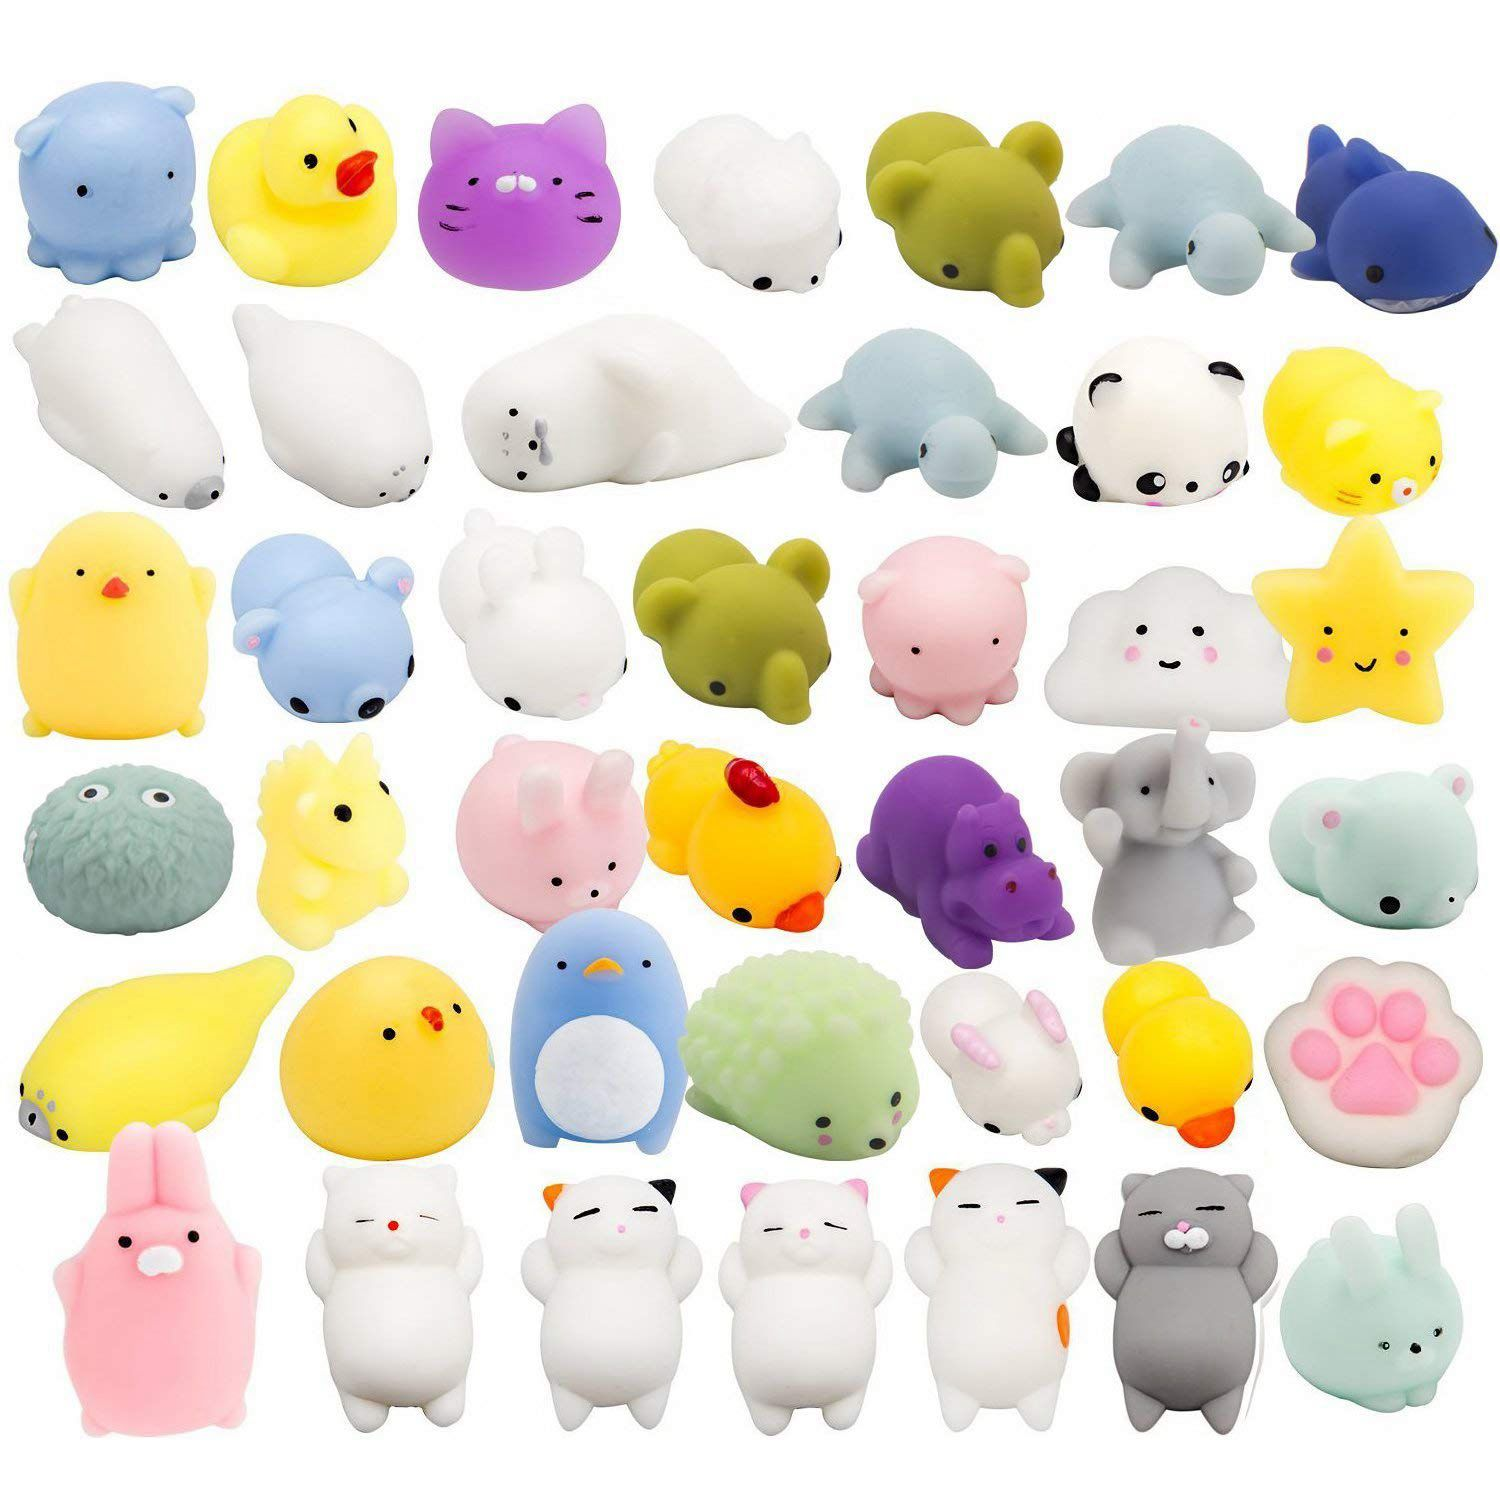 Random 30 Pcs Cute Animal Mochi Squishy, Kawaii Mini Soft Squeeze Toy,Fidget Hand Toy for Kids Gift,Stress Relief,Decoration, цена 2017